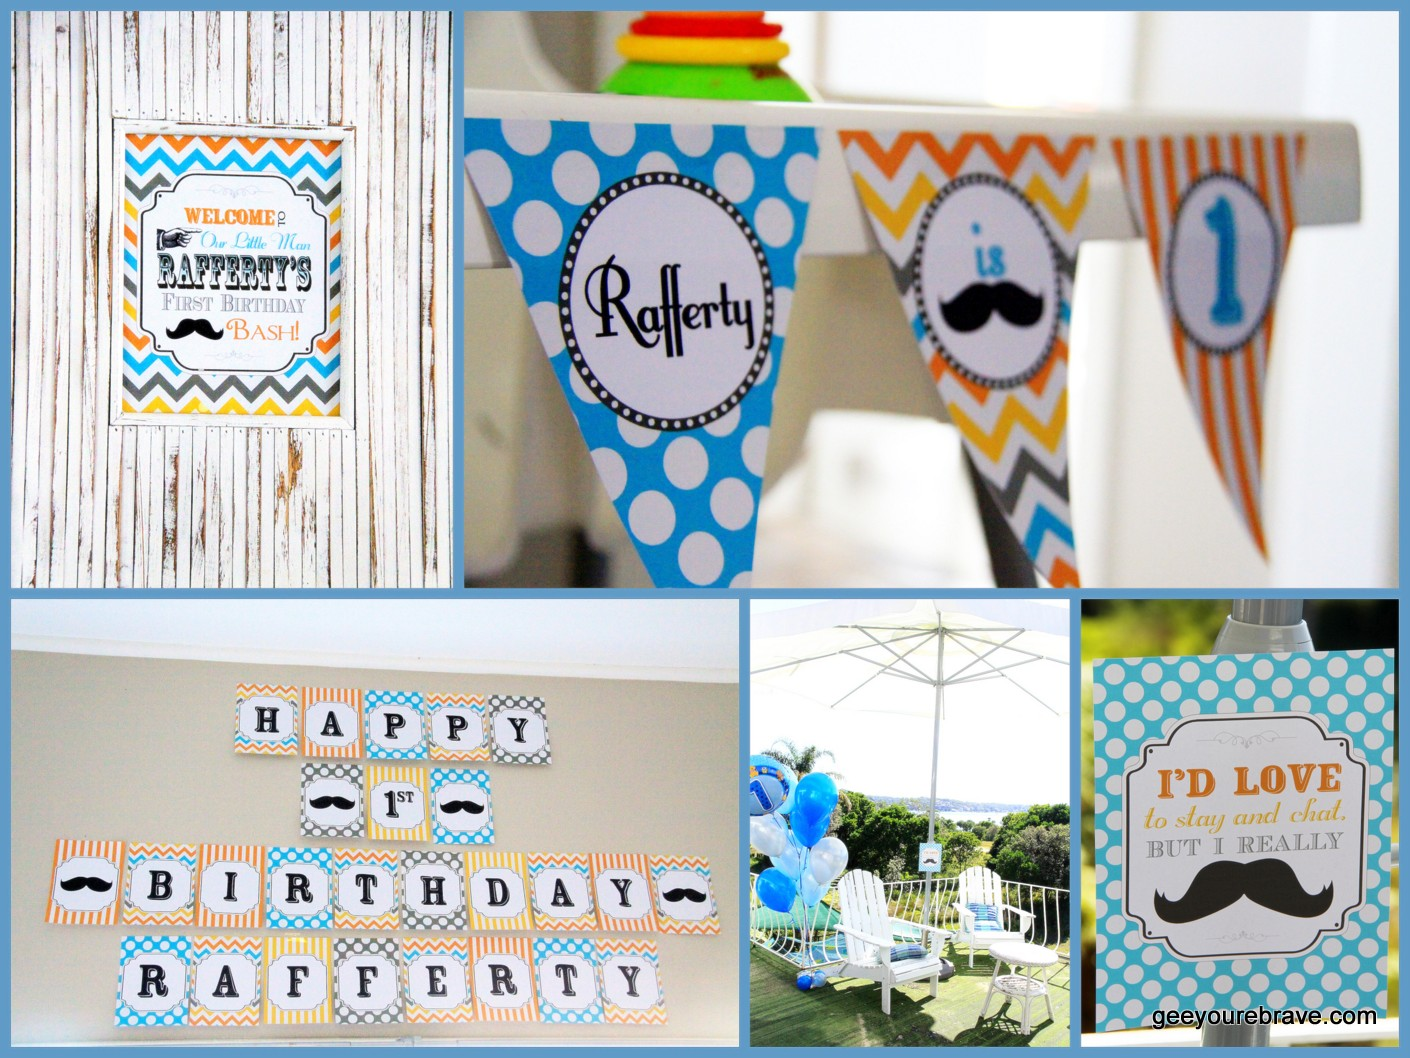 Decorations Kept Simple With DIY Printables